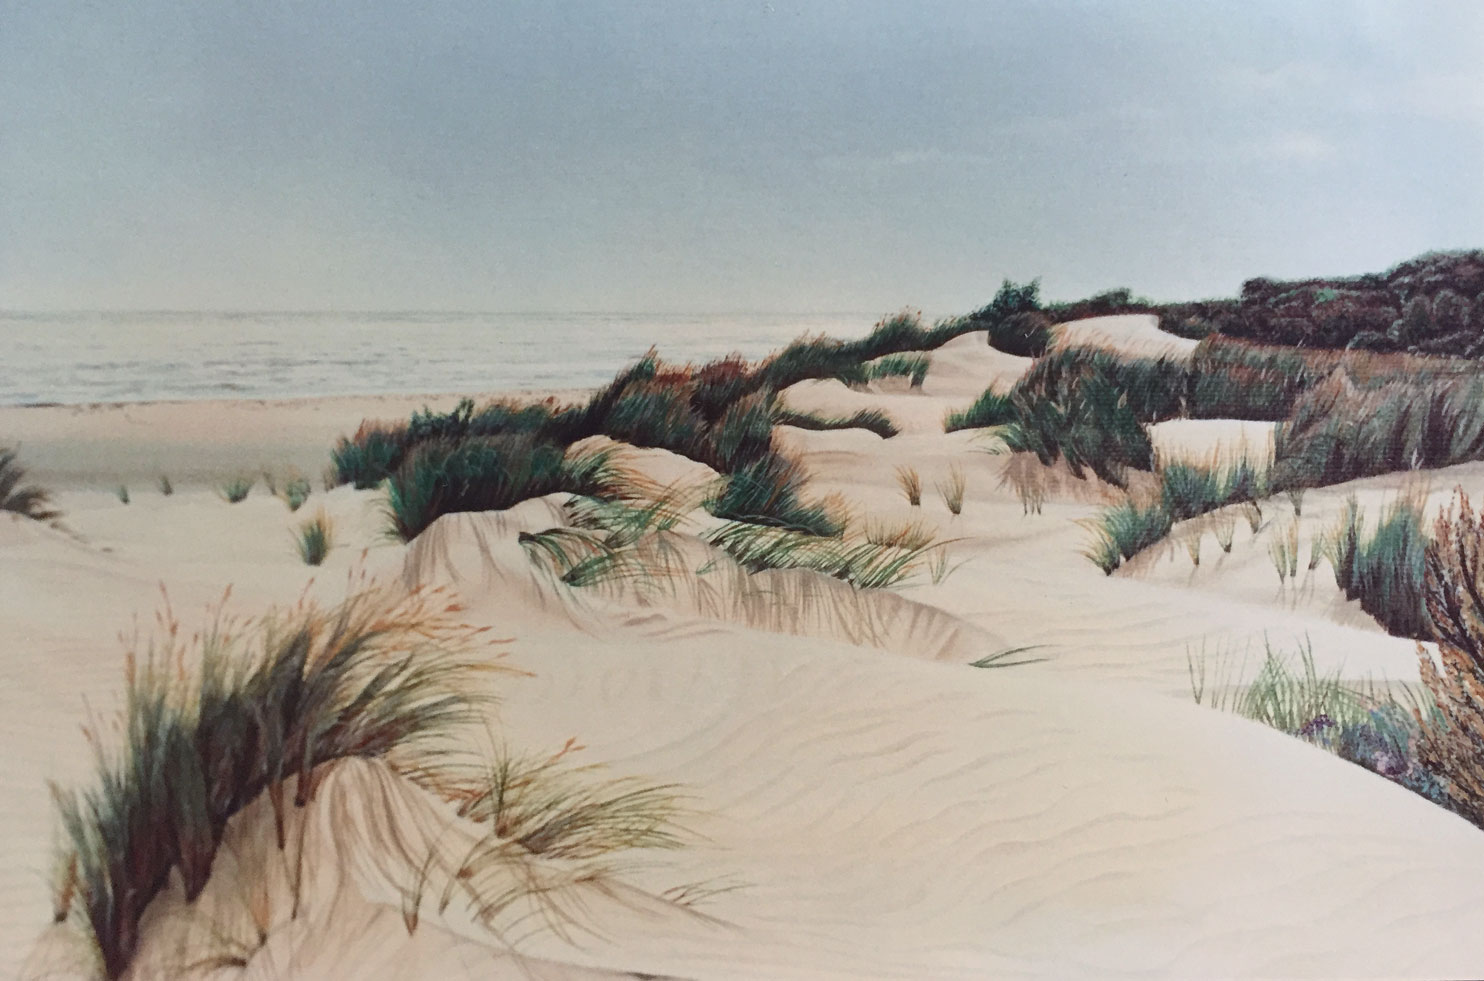 Dunes in Coto Doñana and the river